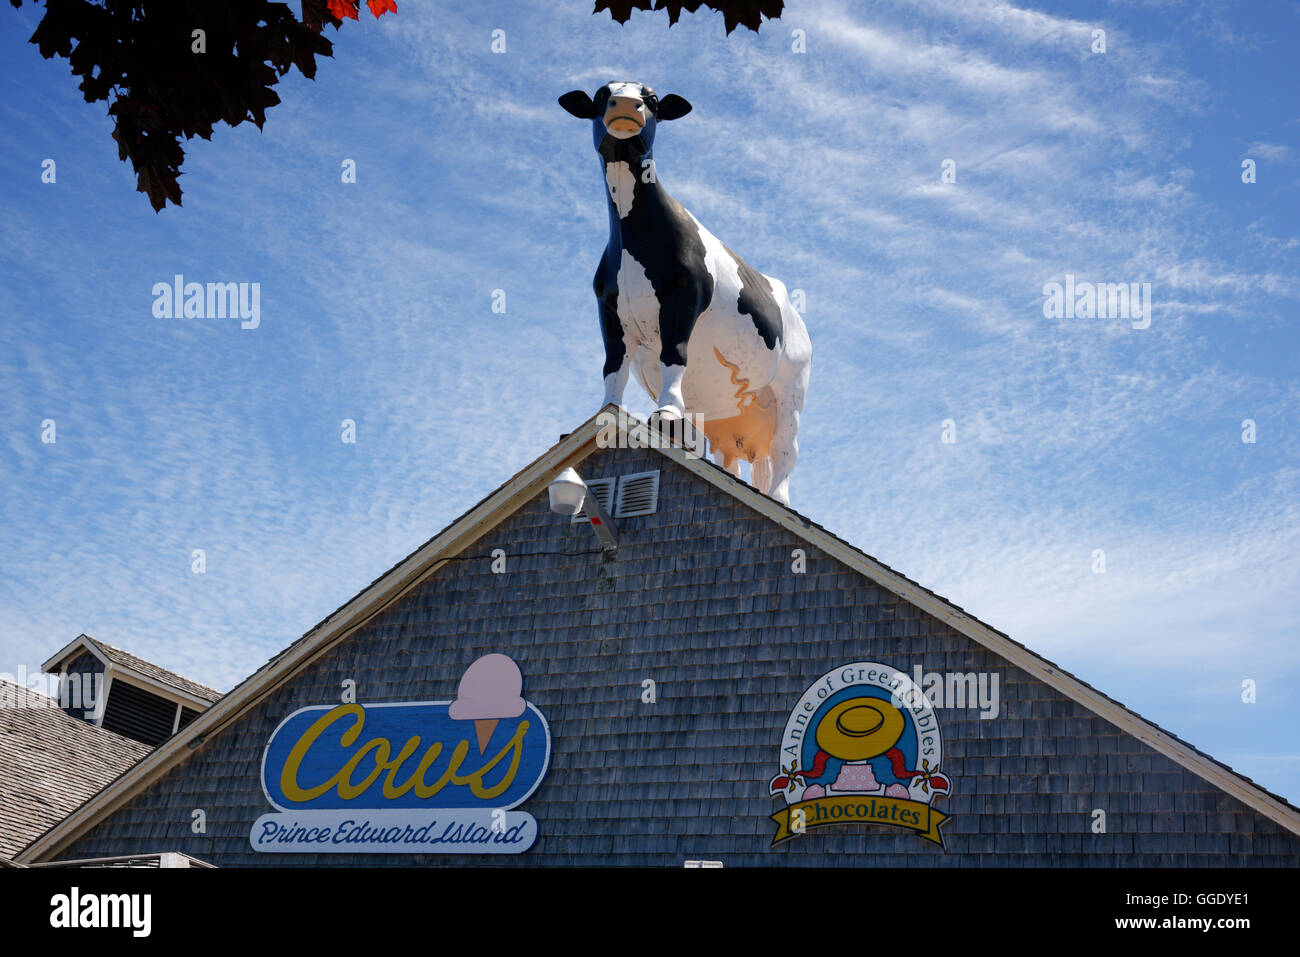 Cow's Ice Cream shop in Cavendish, prince Edward Island